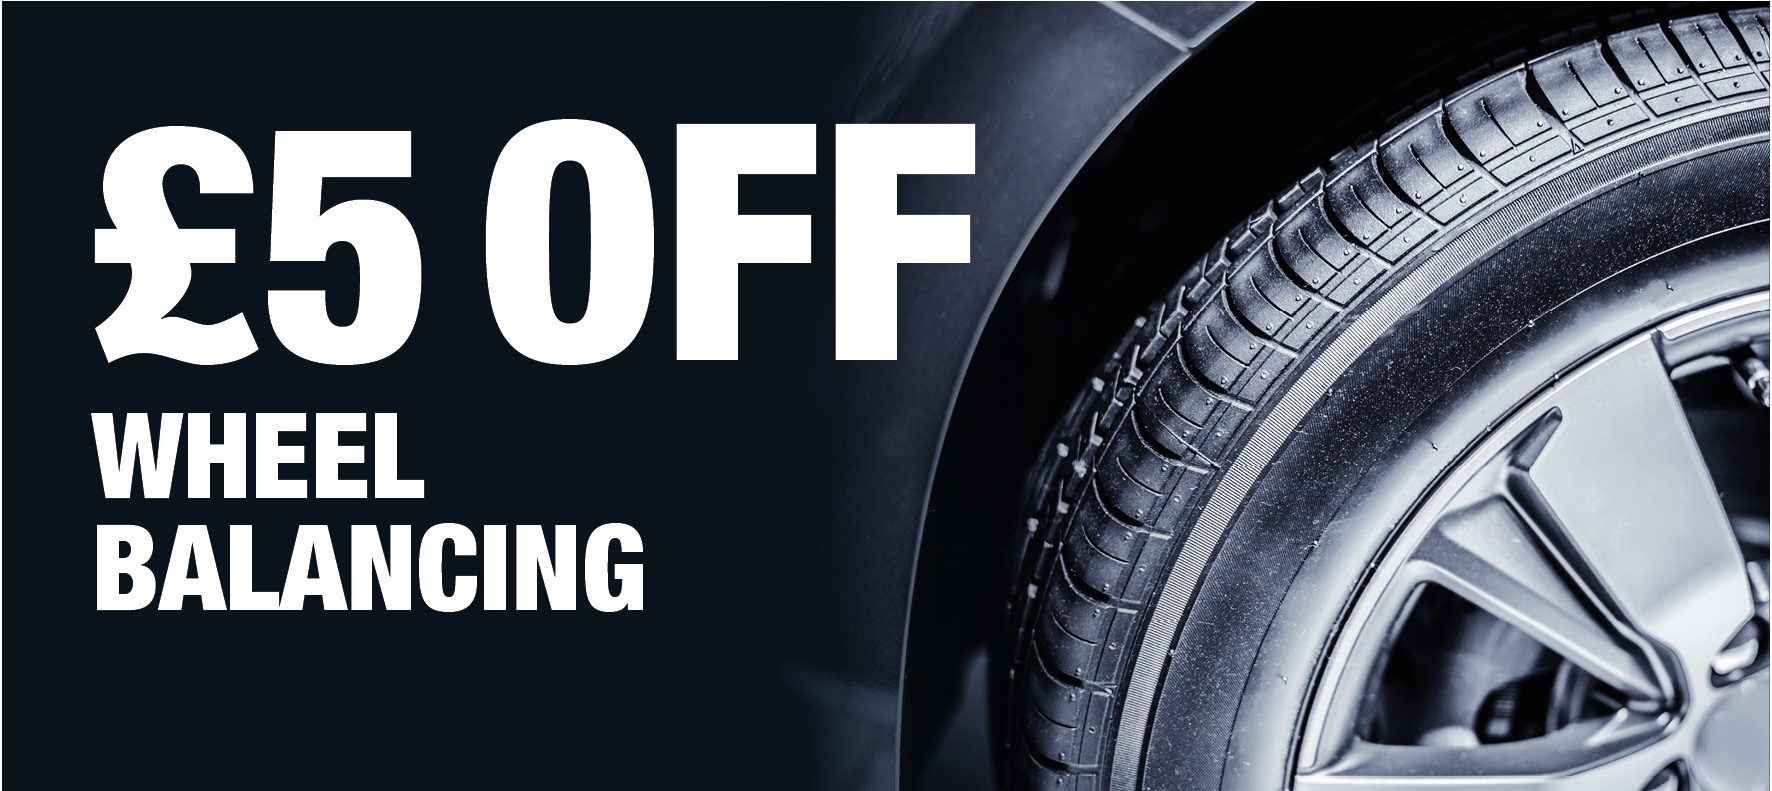 Save £5 on Wheel Balancing at Formula One Autocentres